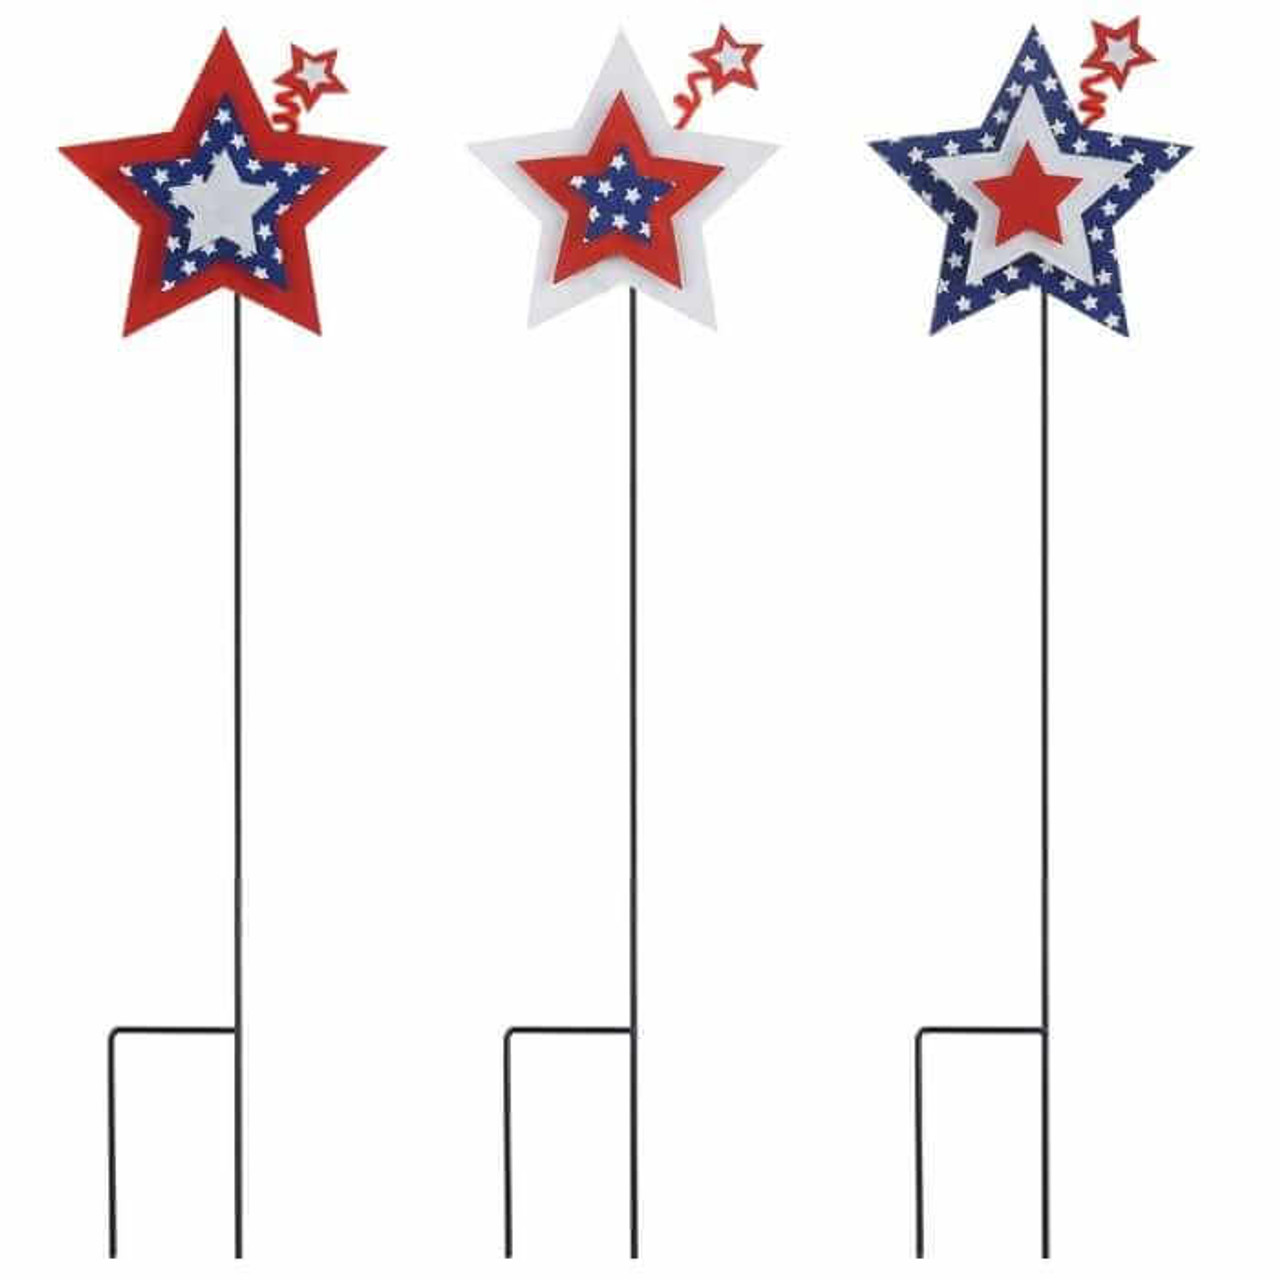 Set of 3 red, white, and blue American style garden stakes.